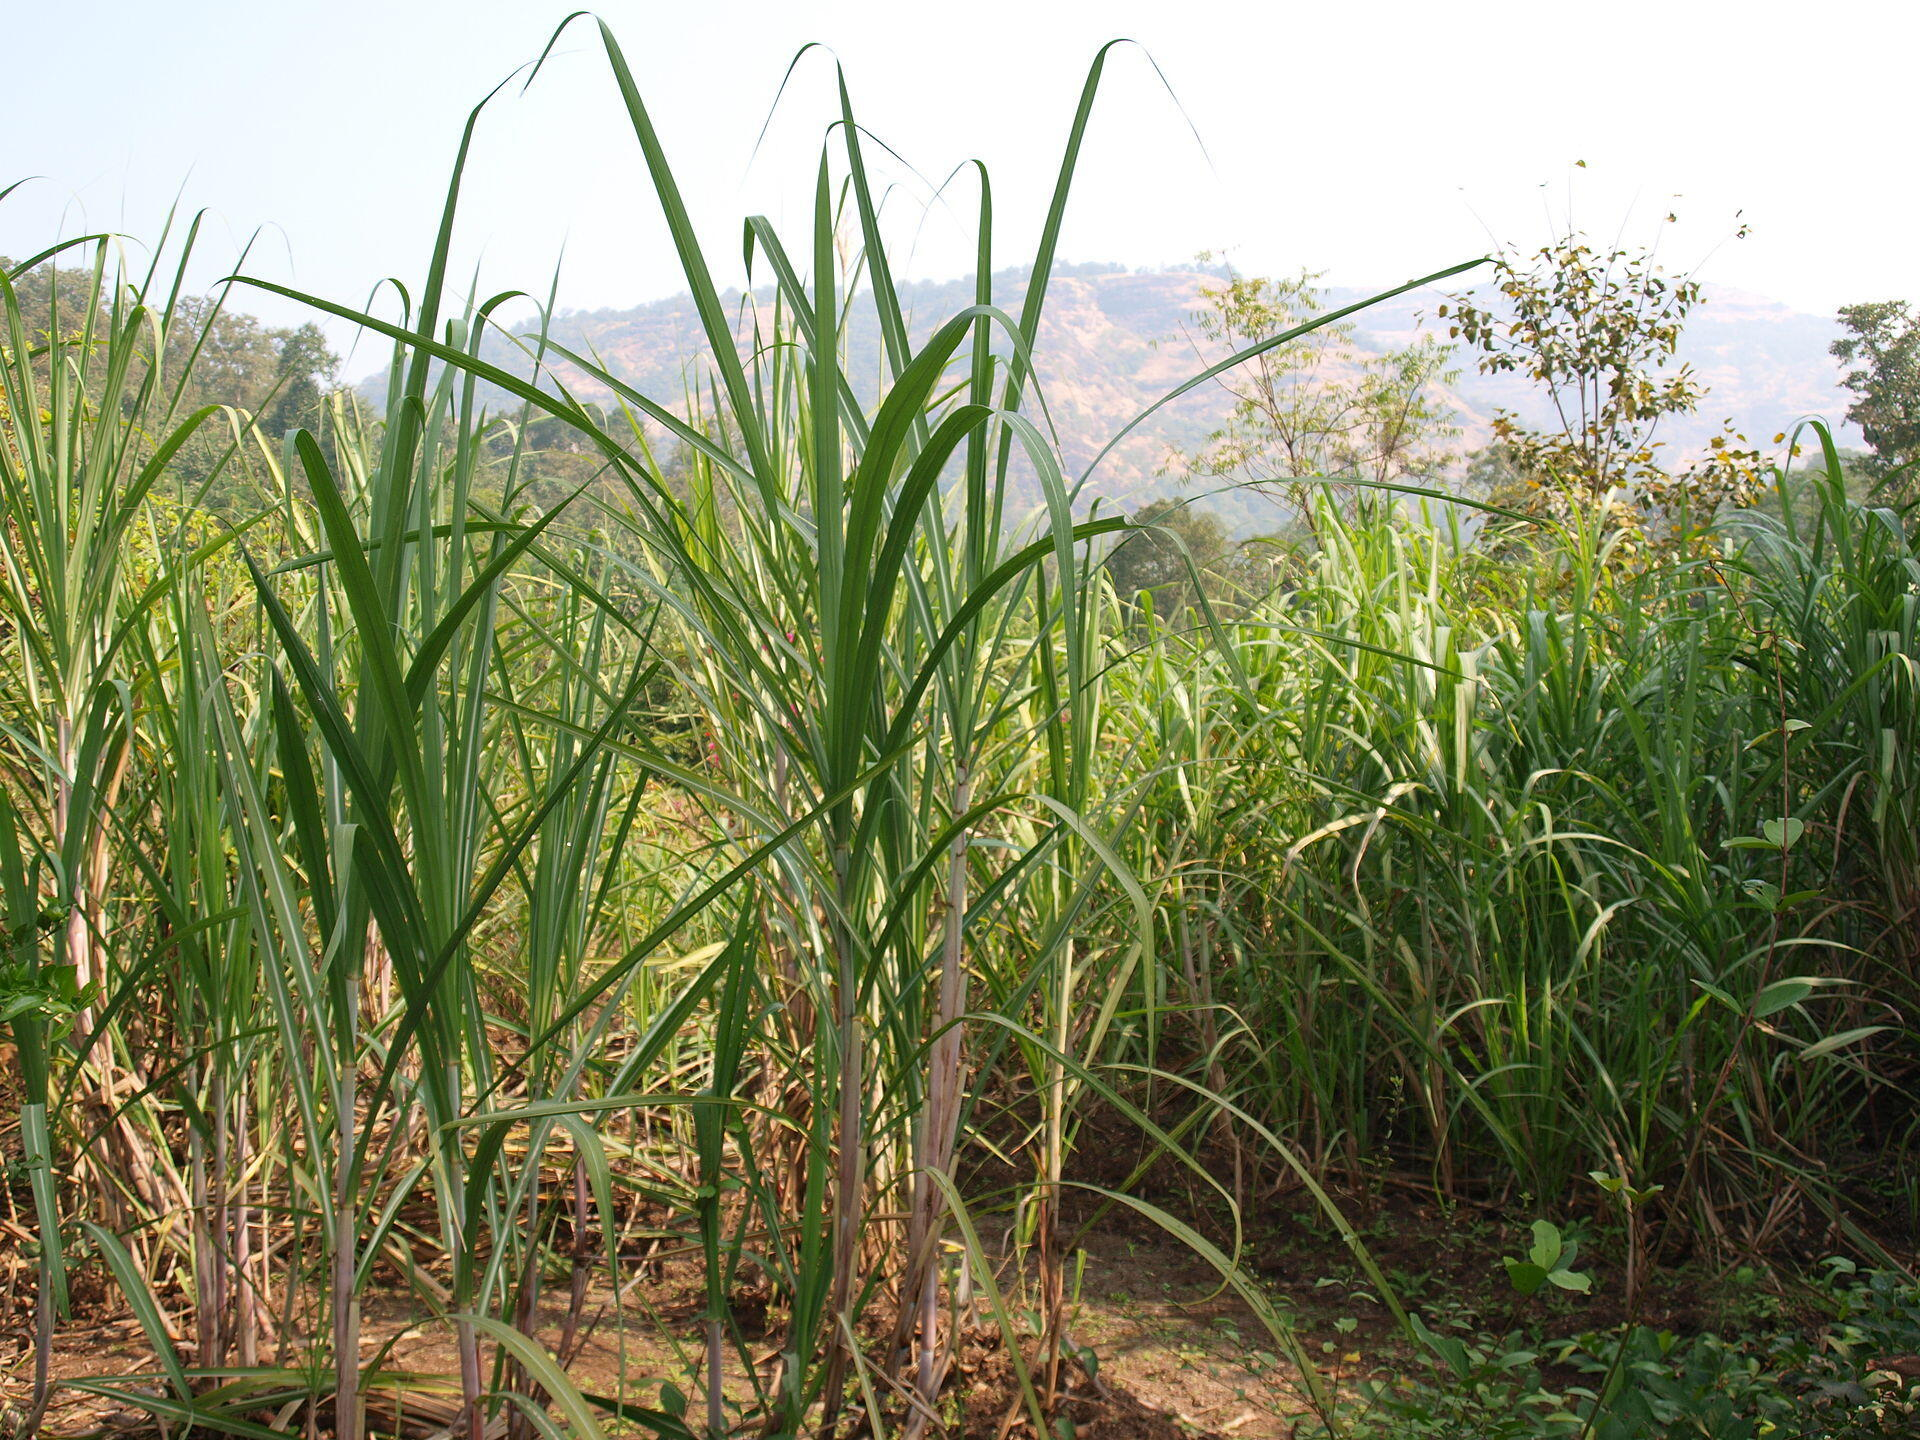 Freshly grown sugarcane. Agriculture is the second leading occupation in Maharashtra, India.